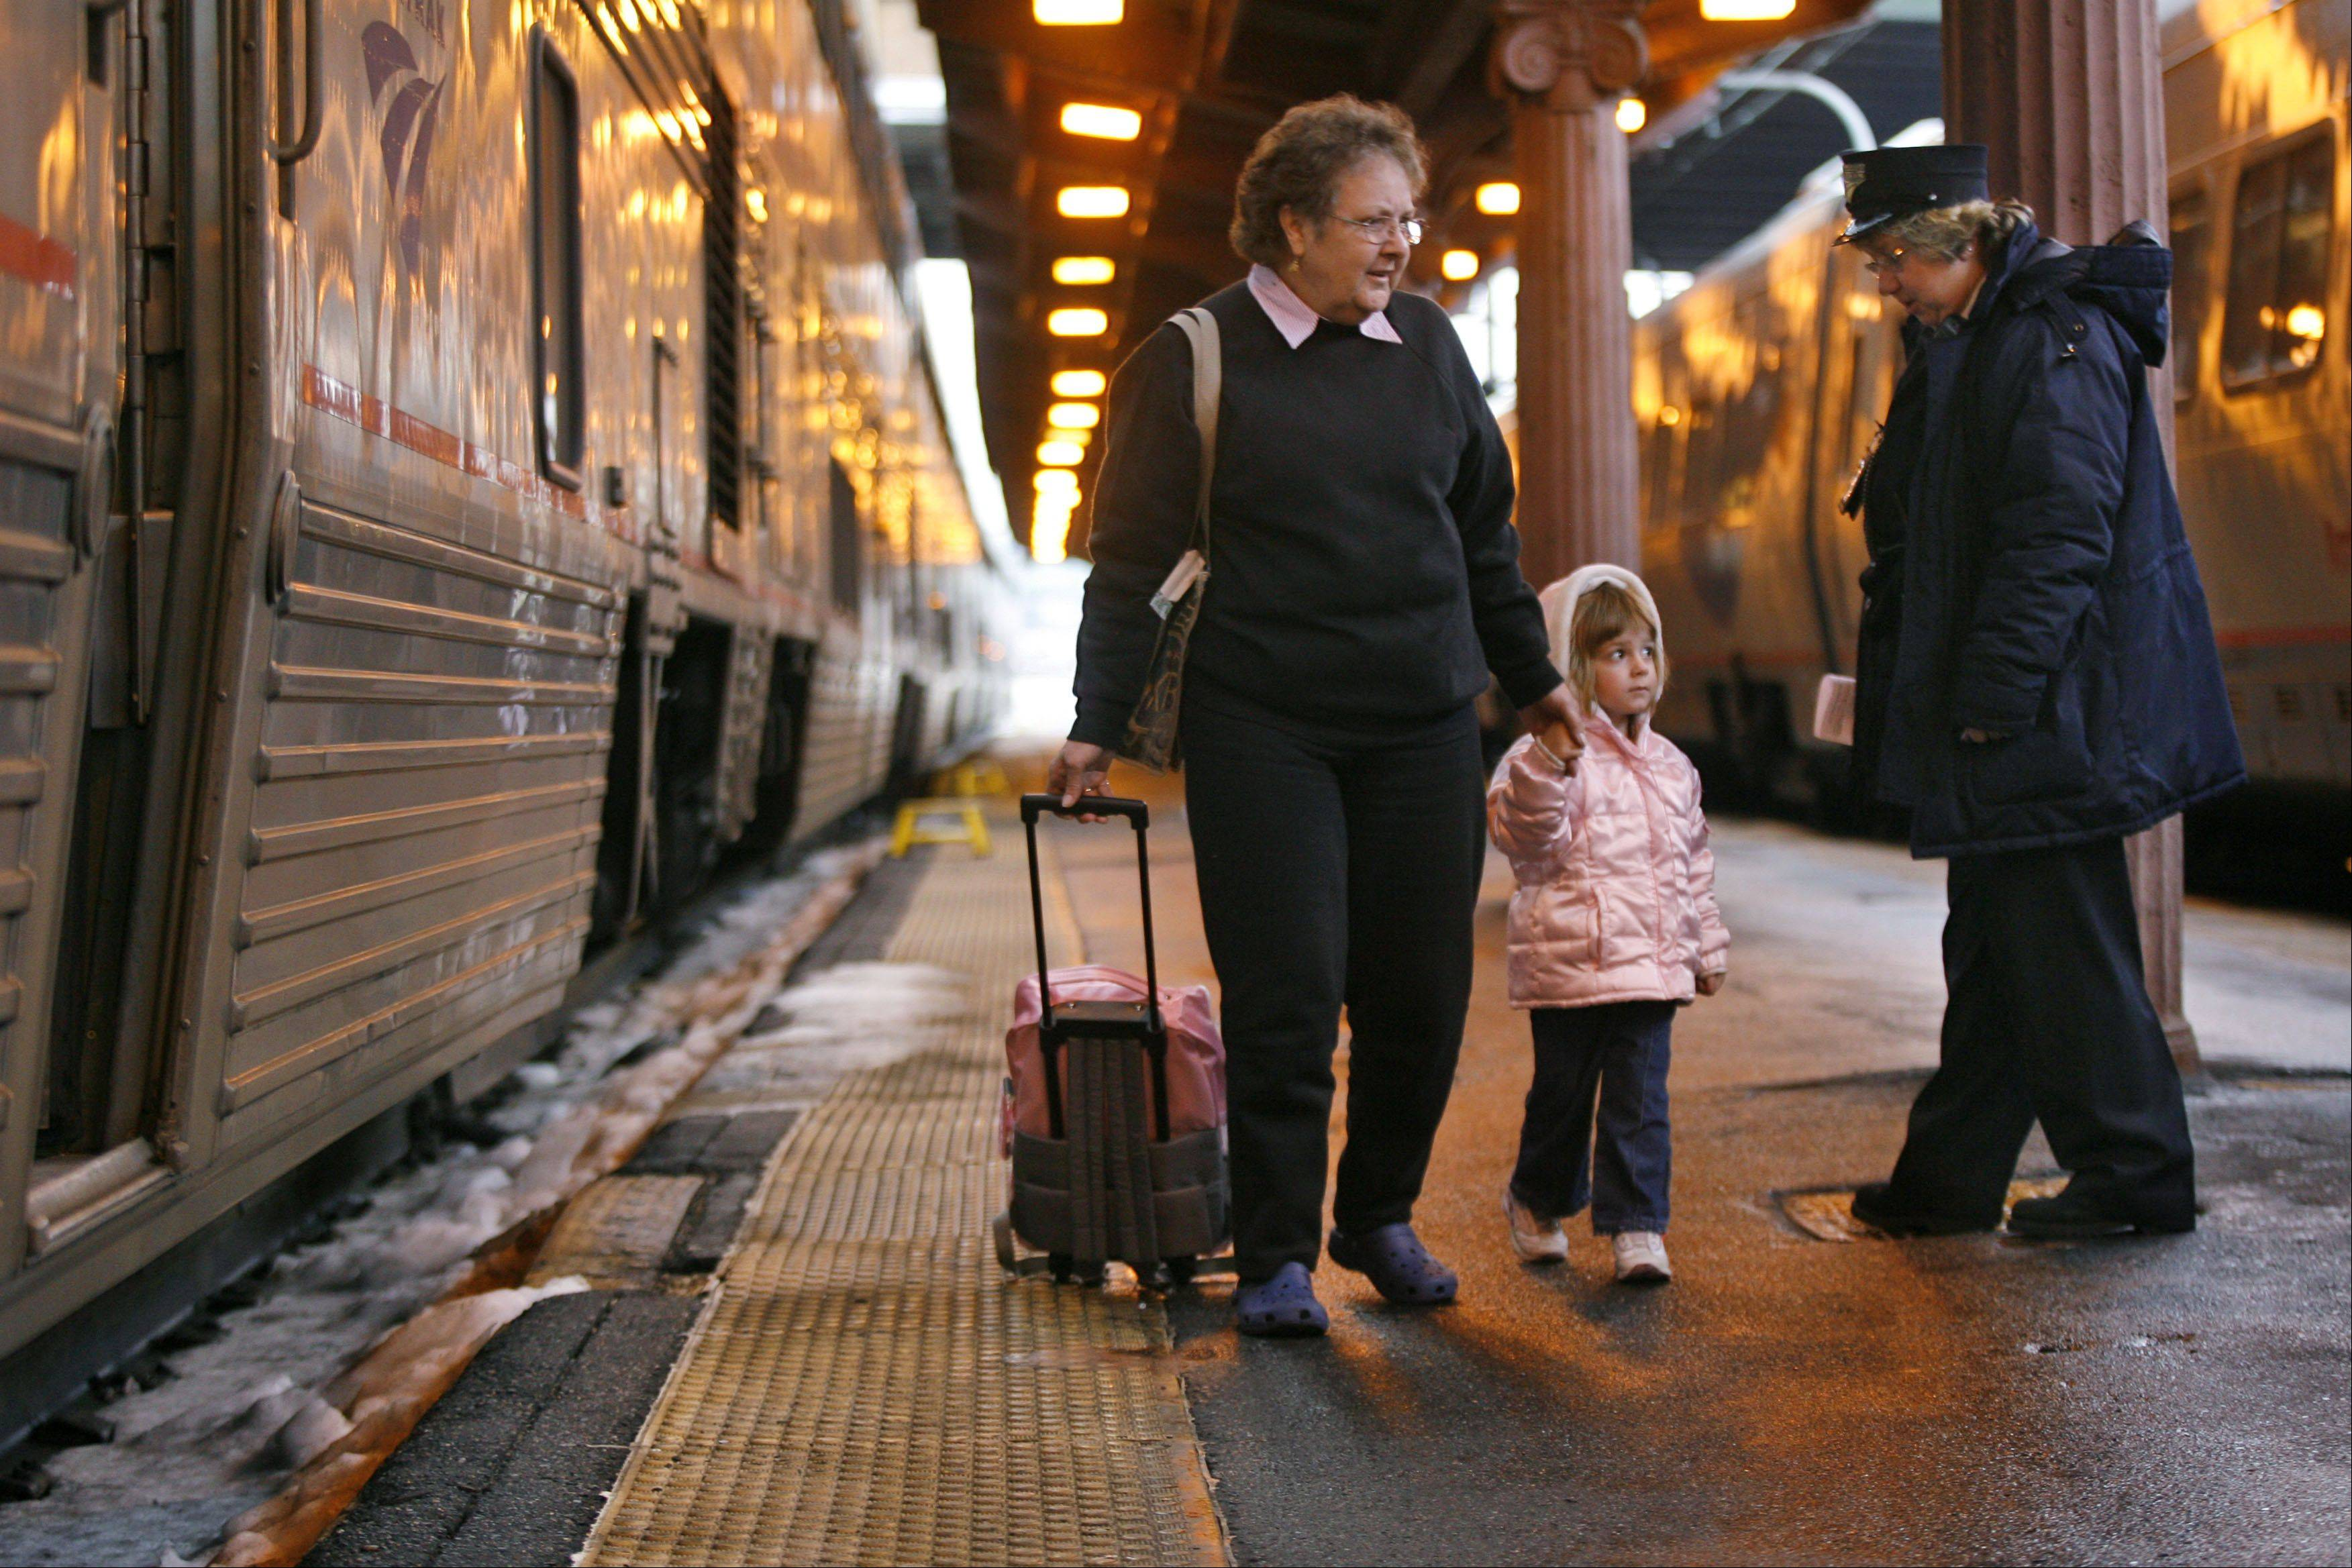 Amtrak cancels northeast service ahead of Sandy